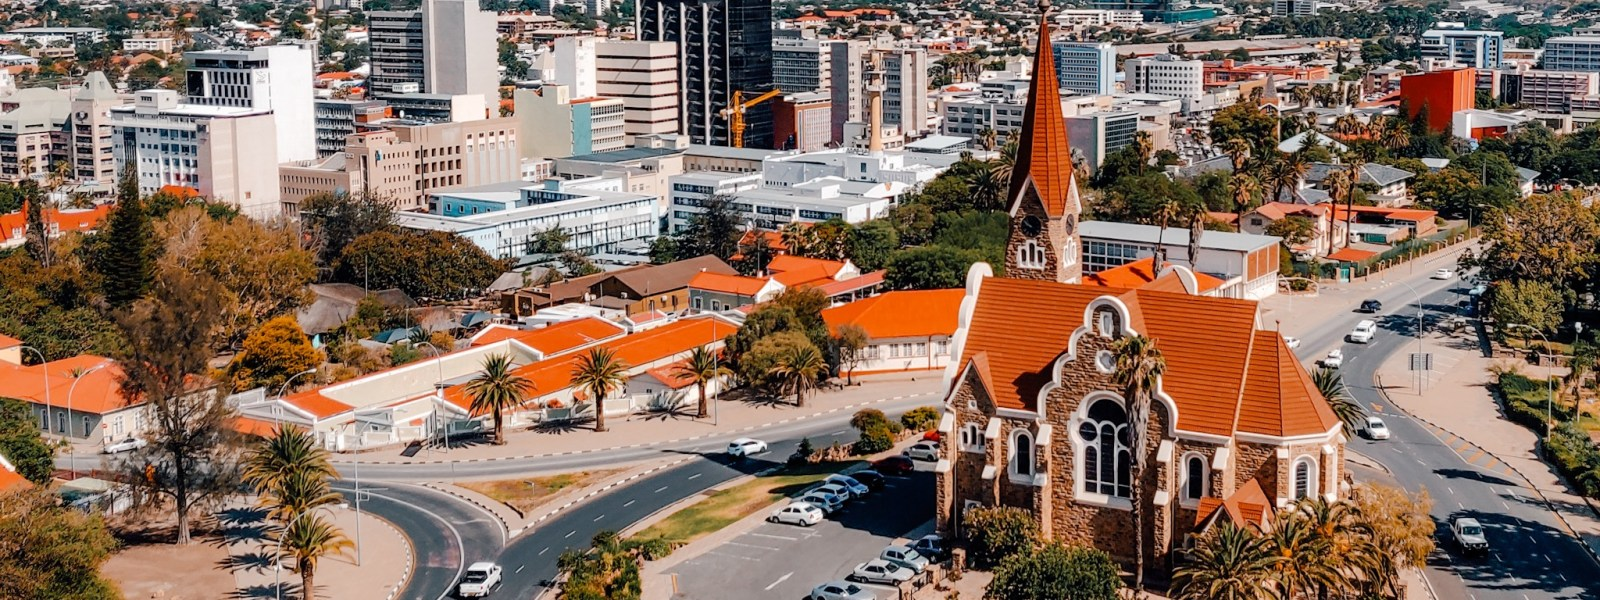 Windhoek accommodation: best hostels and luxury hotels